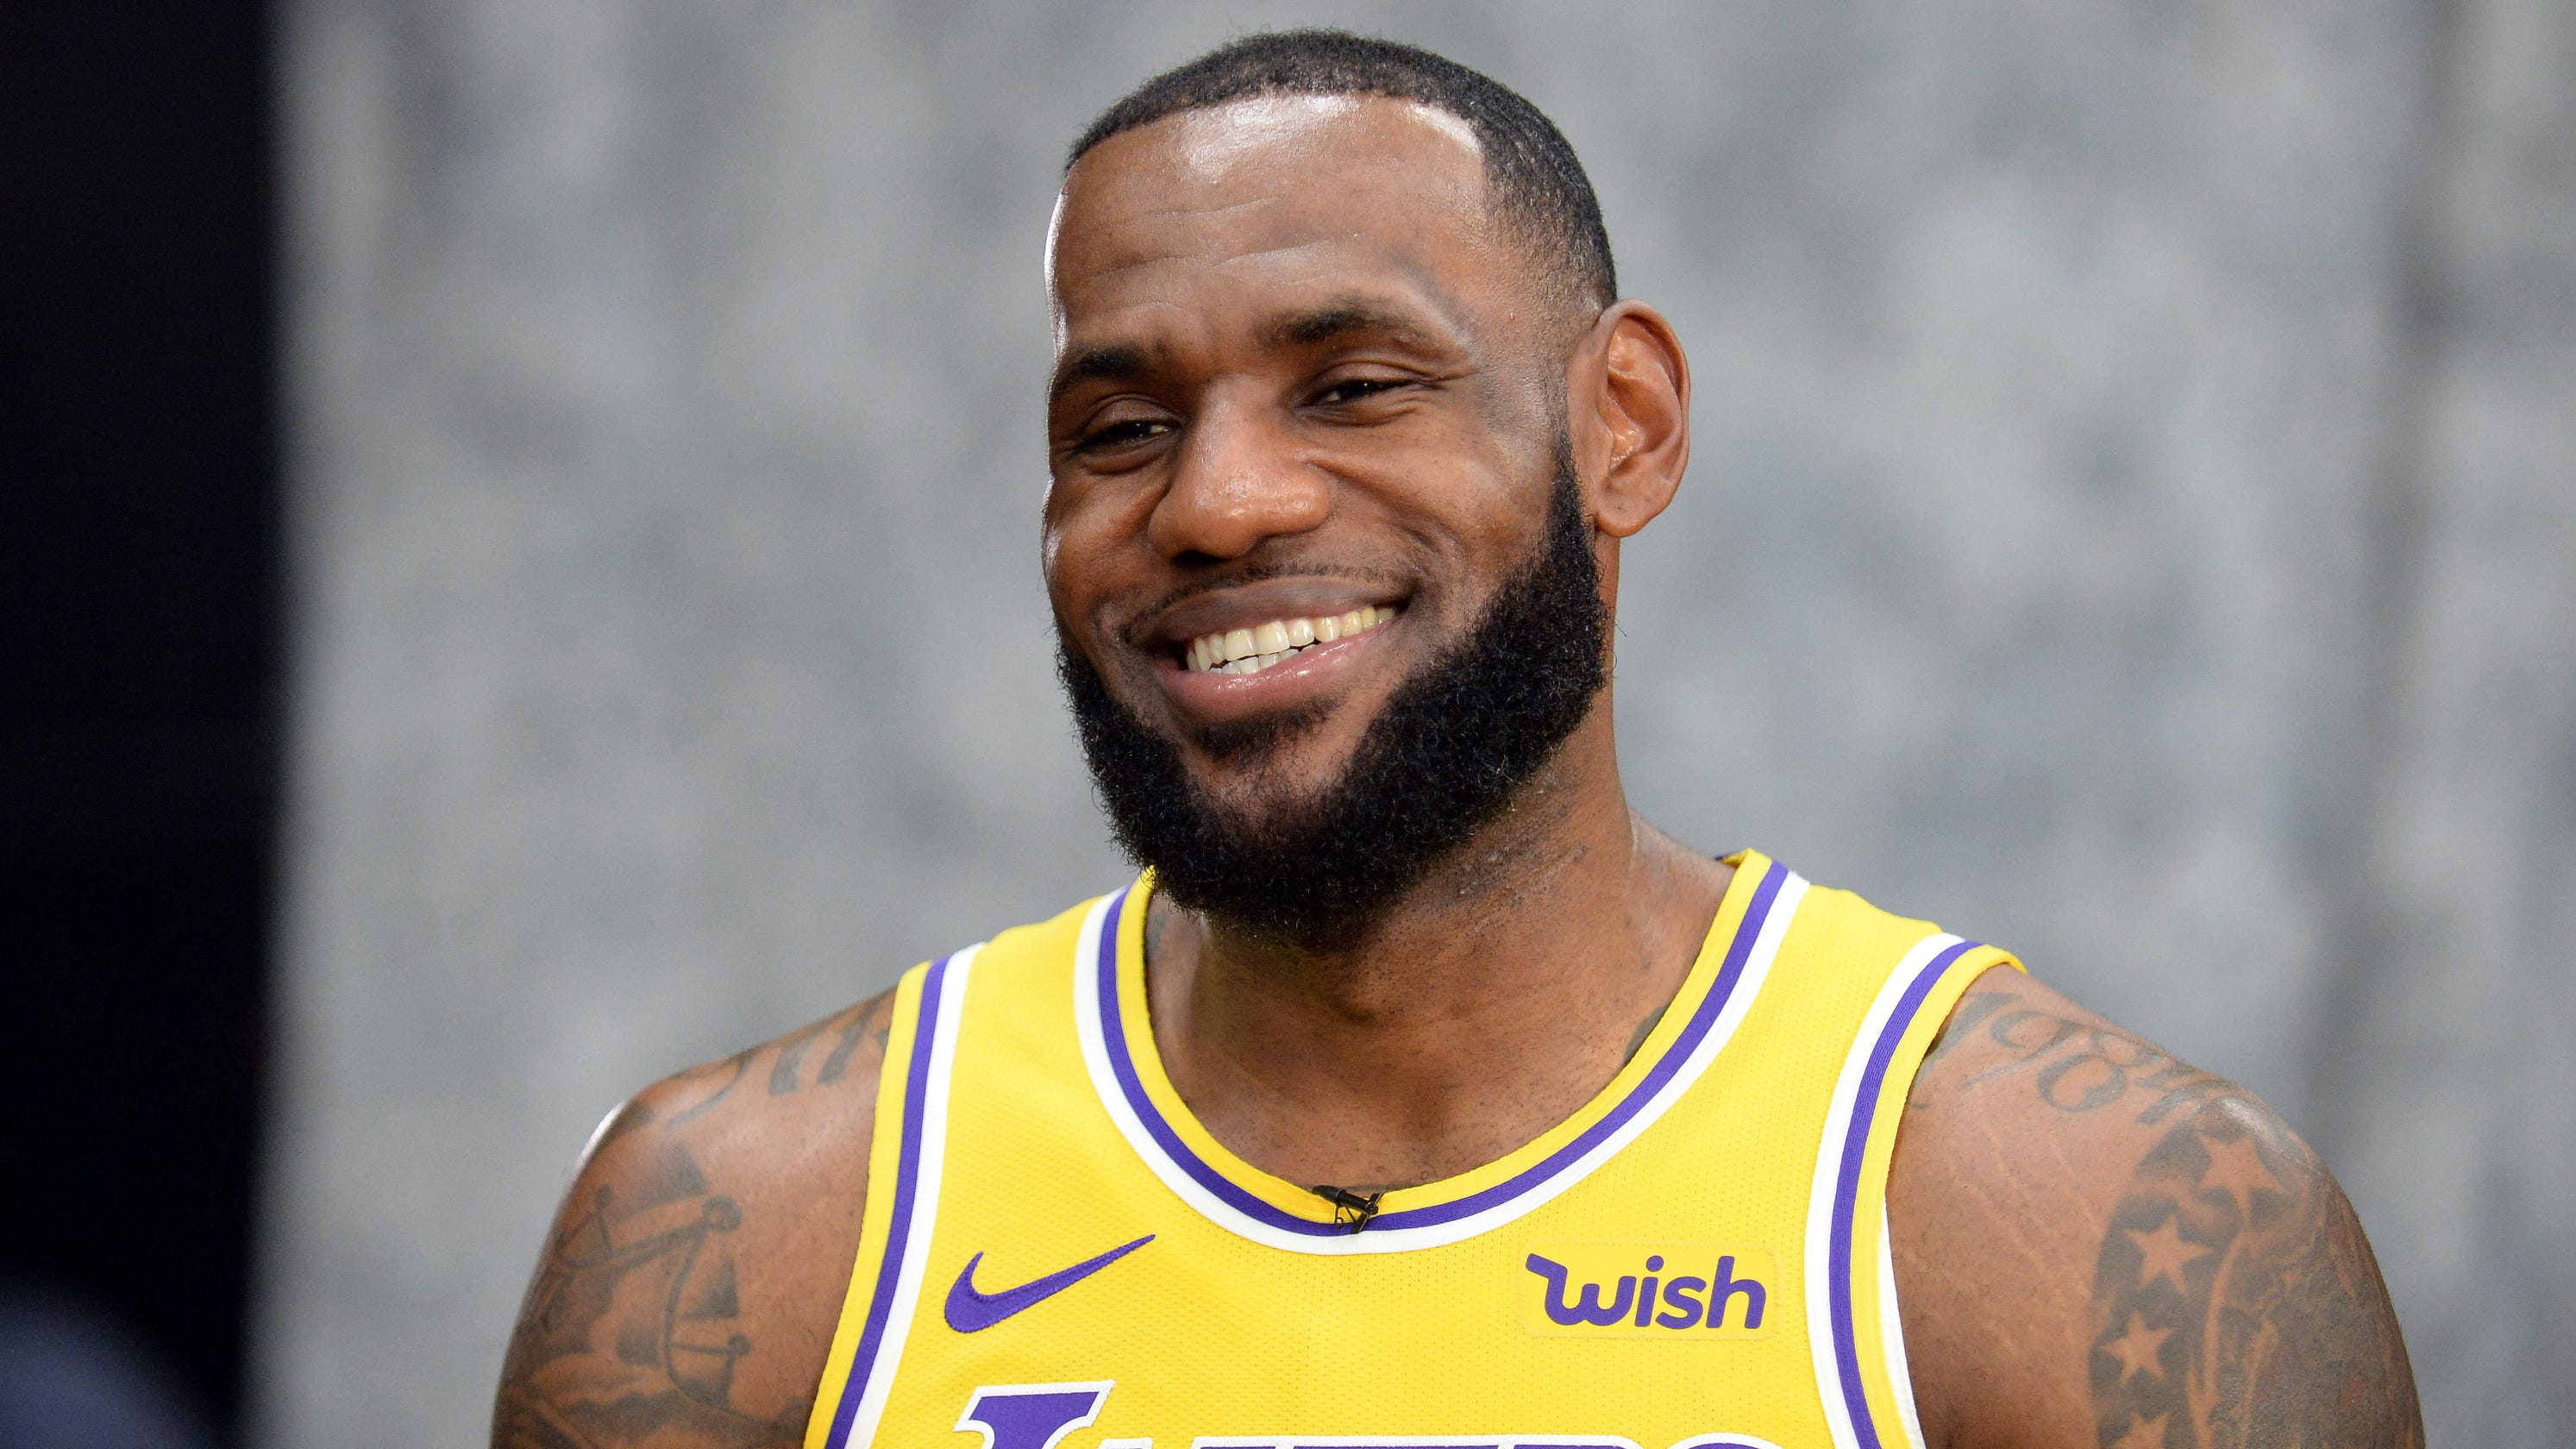 b66e5a812b5 LeBron James takes Lakers media to task